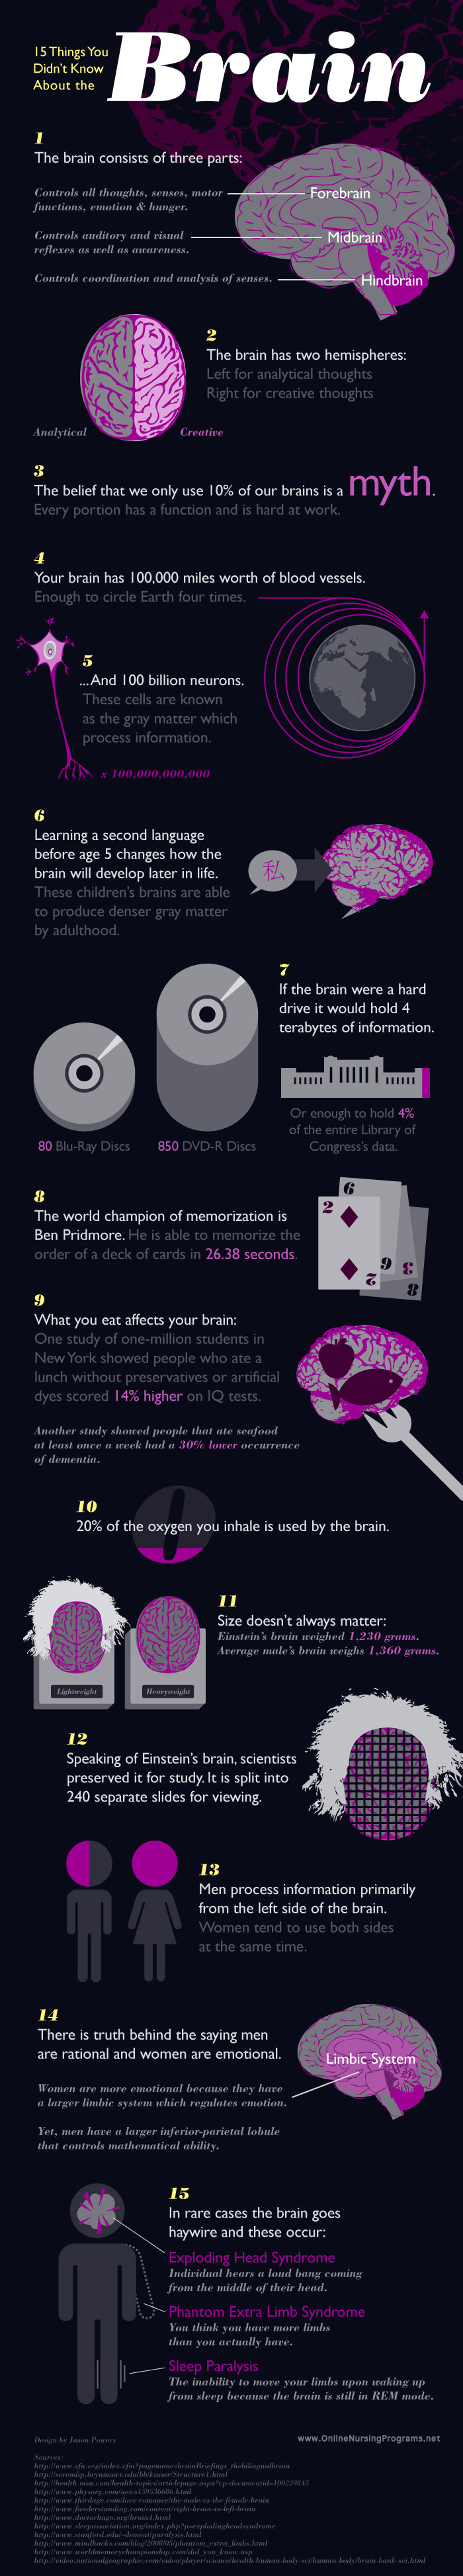 Things You Didn't Know About The Brain